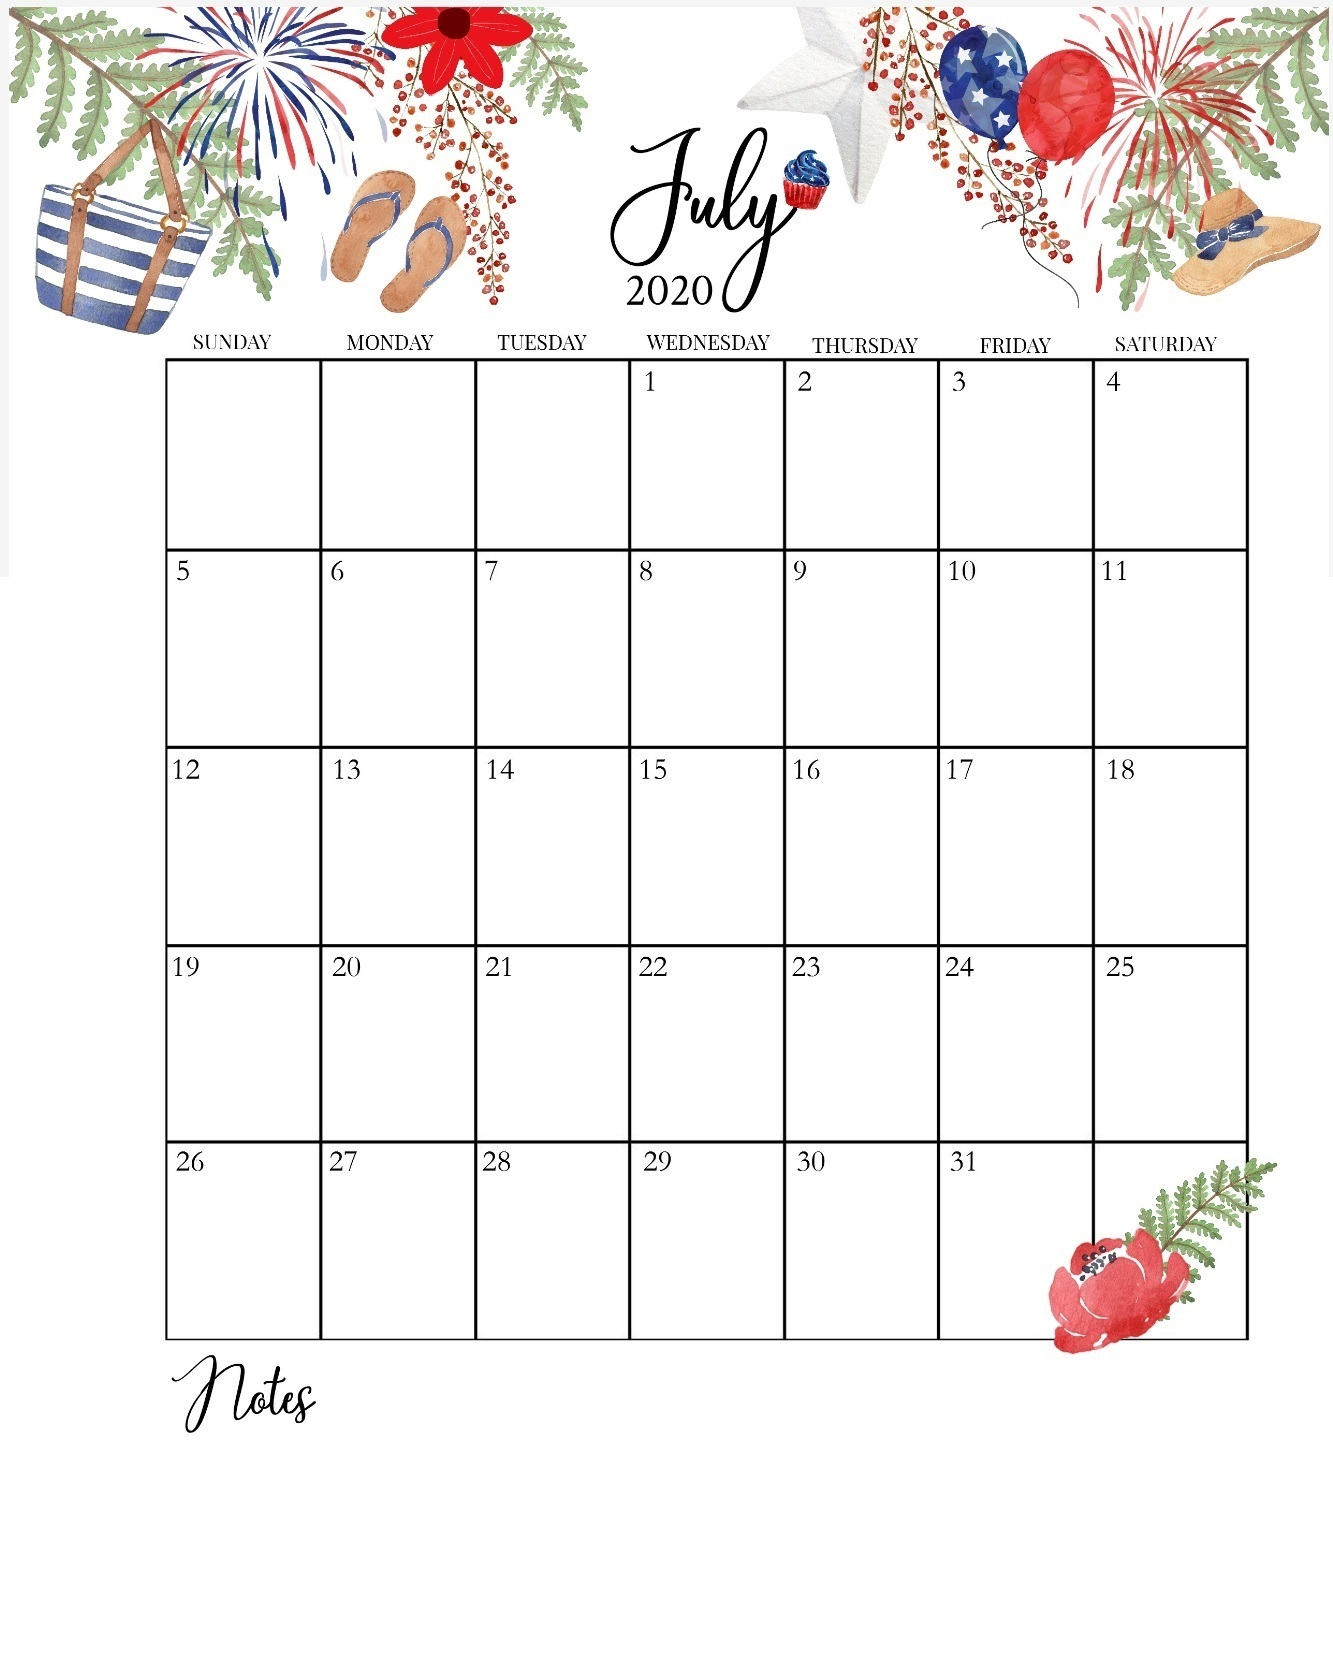 July 2020 Home Desk Calendar